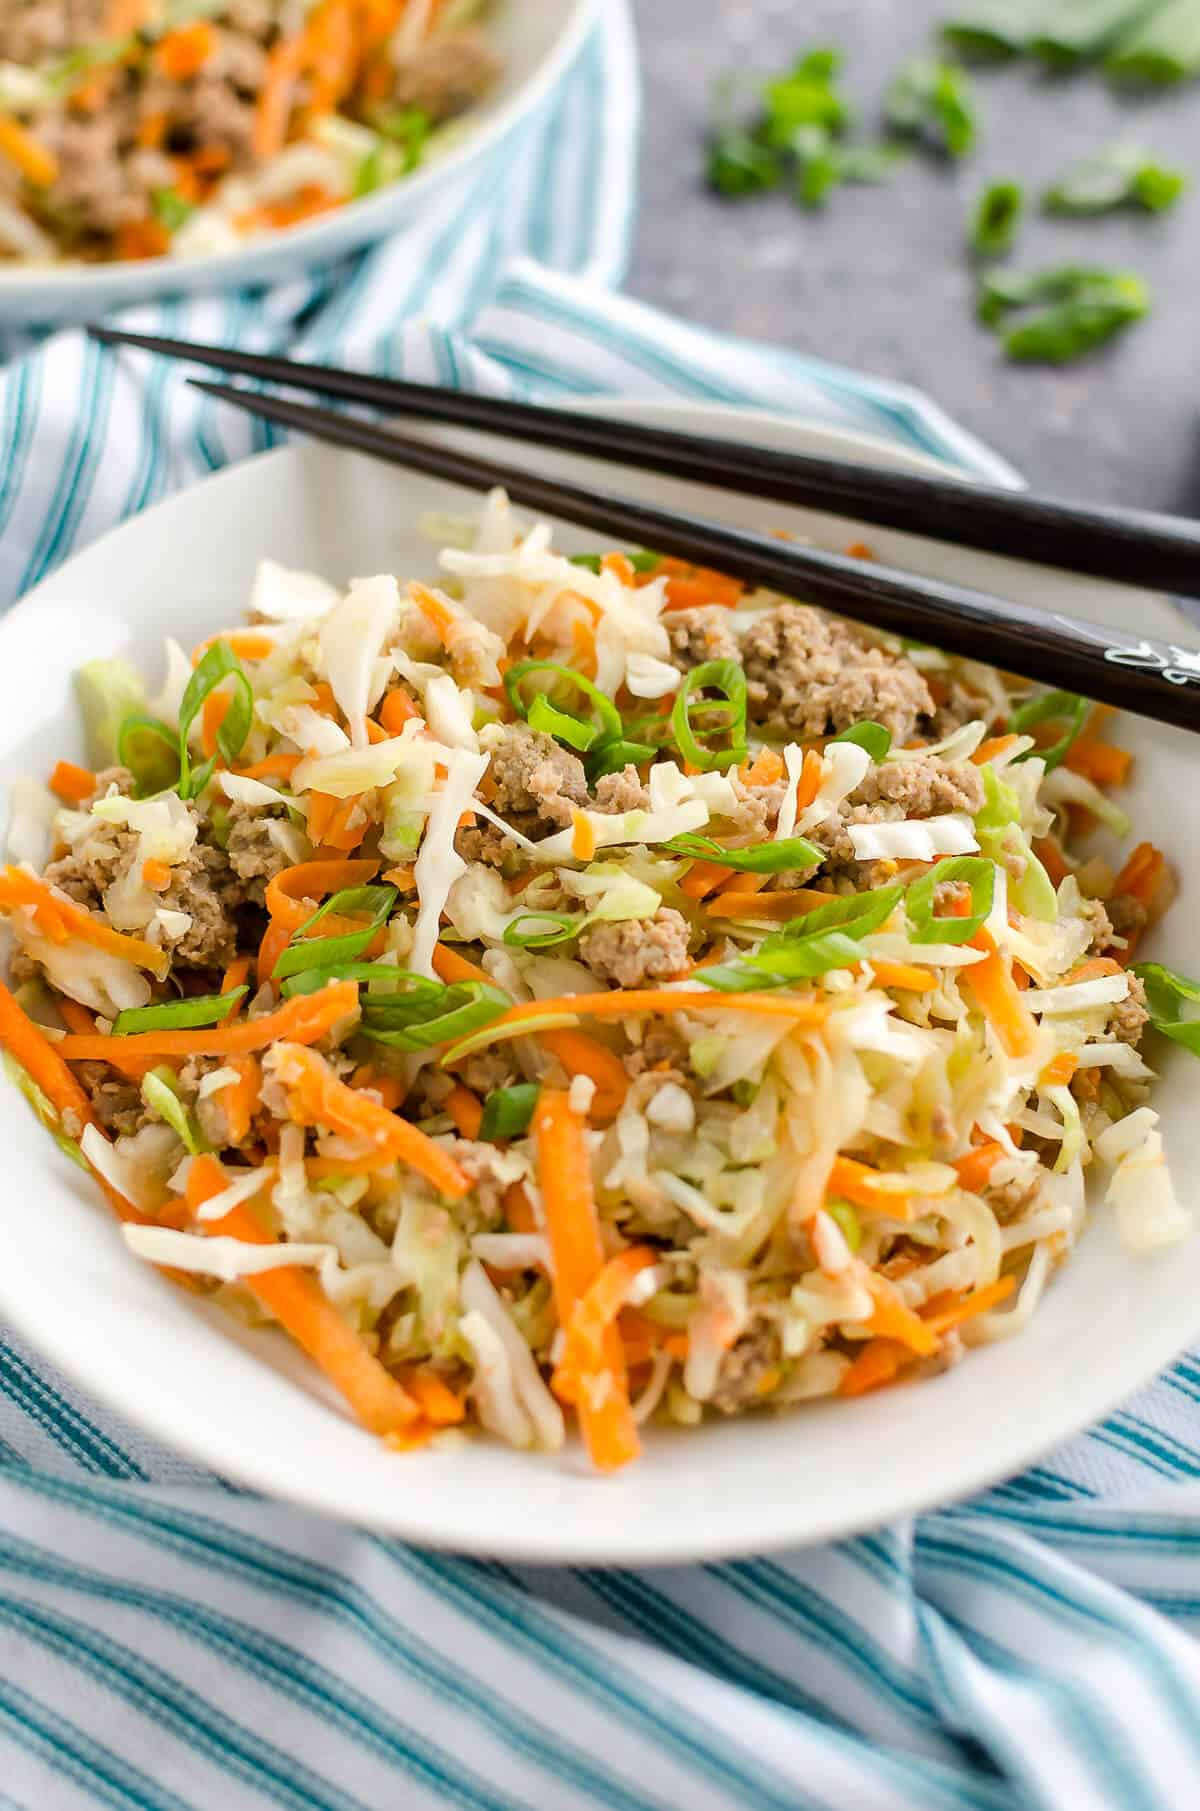 white bowl filled with cooked ground turkey, shredded cabbage, shredded carrots and seasonings to create a deconstructed egg roll. chopsticks laying over top of the bowl.